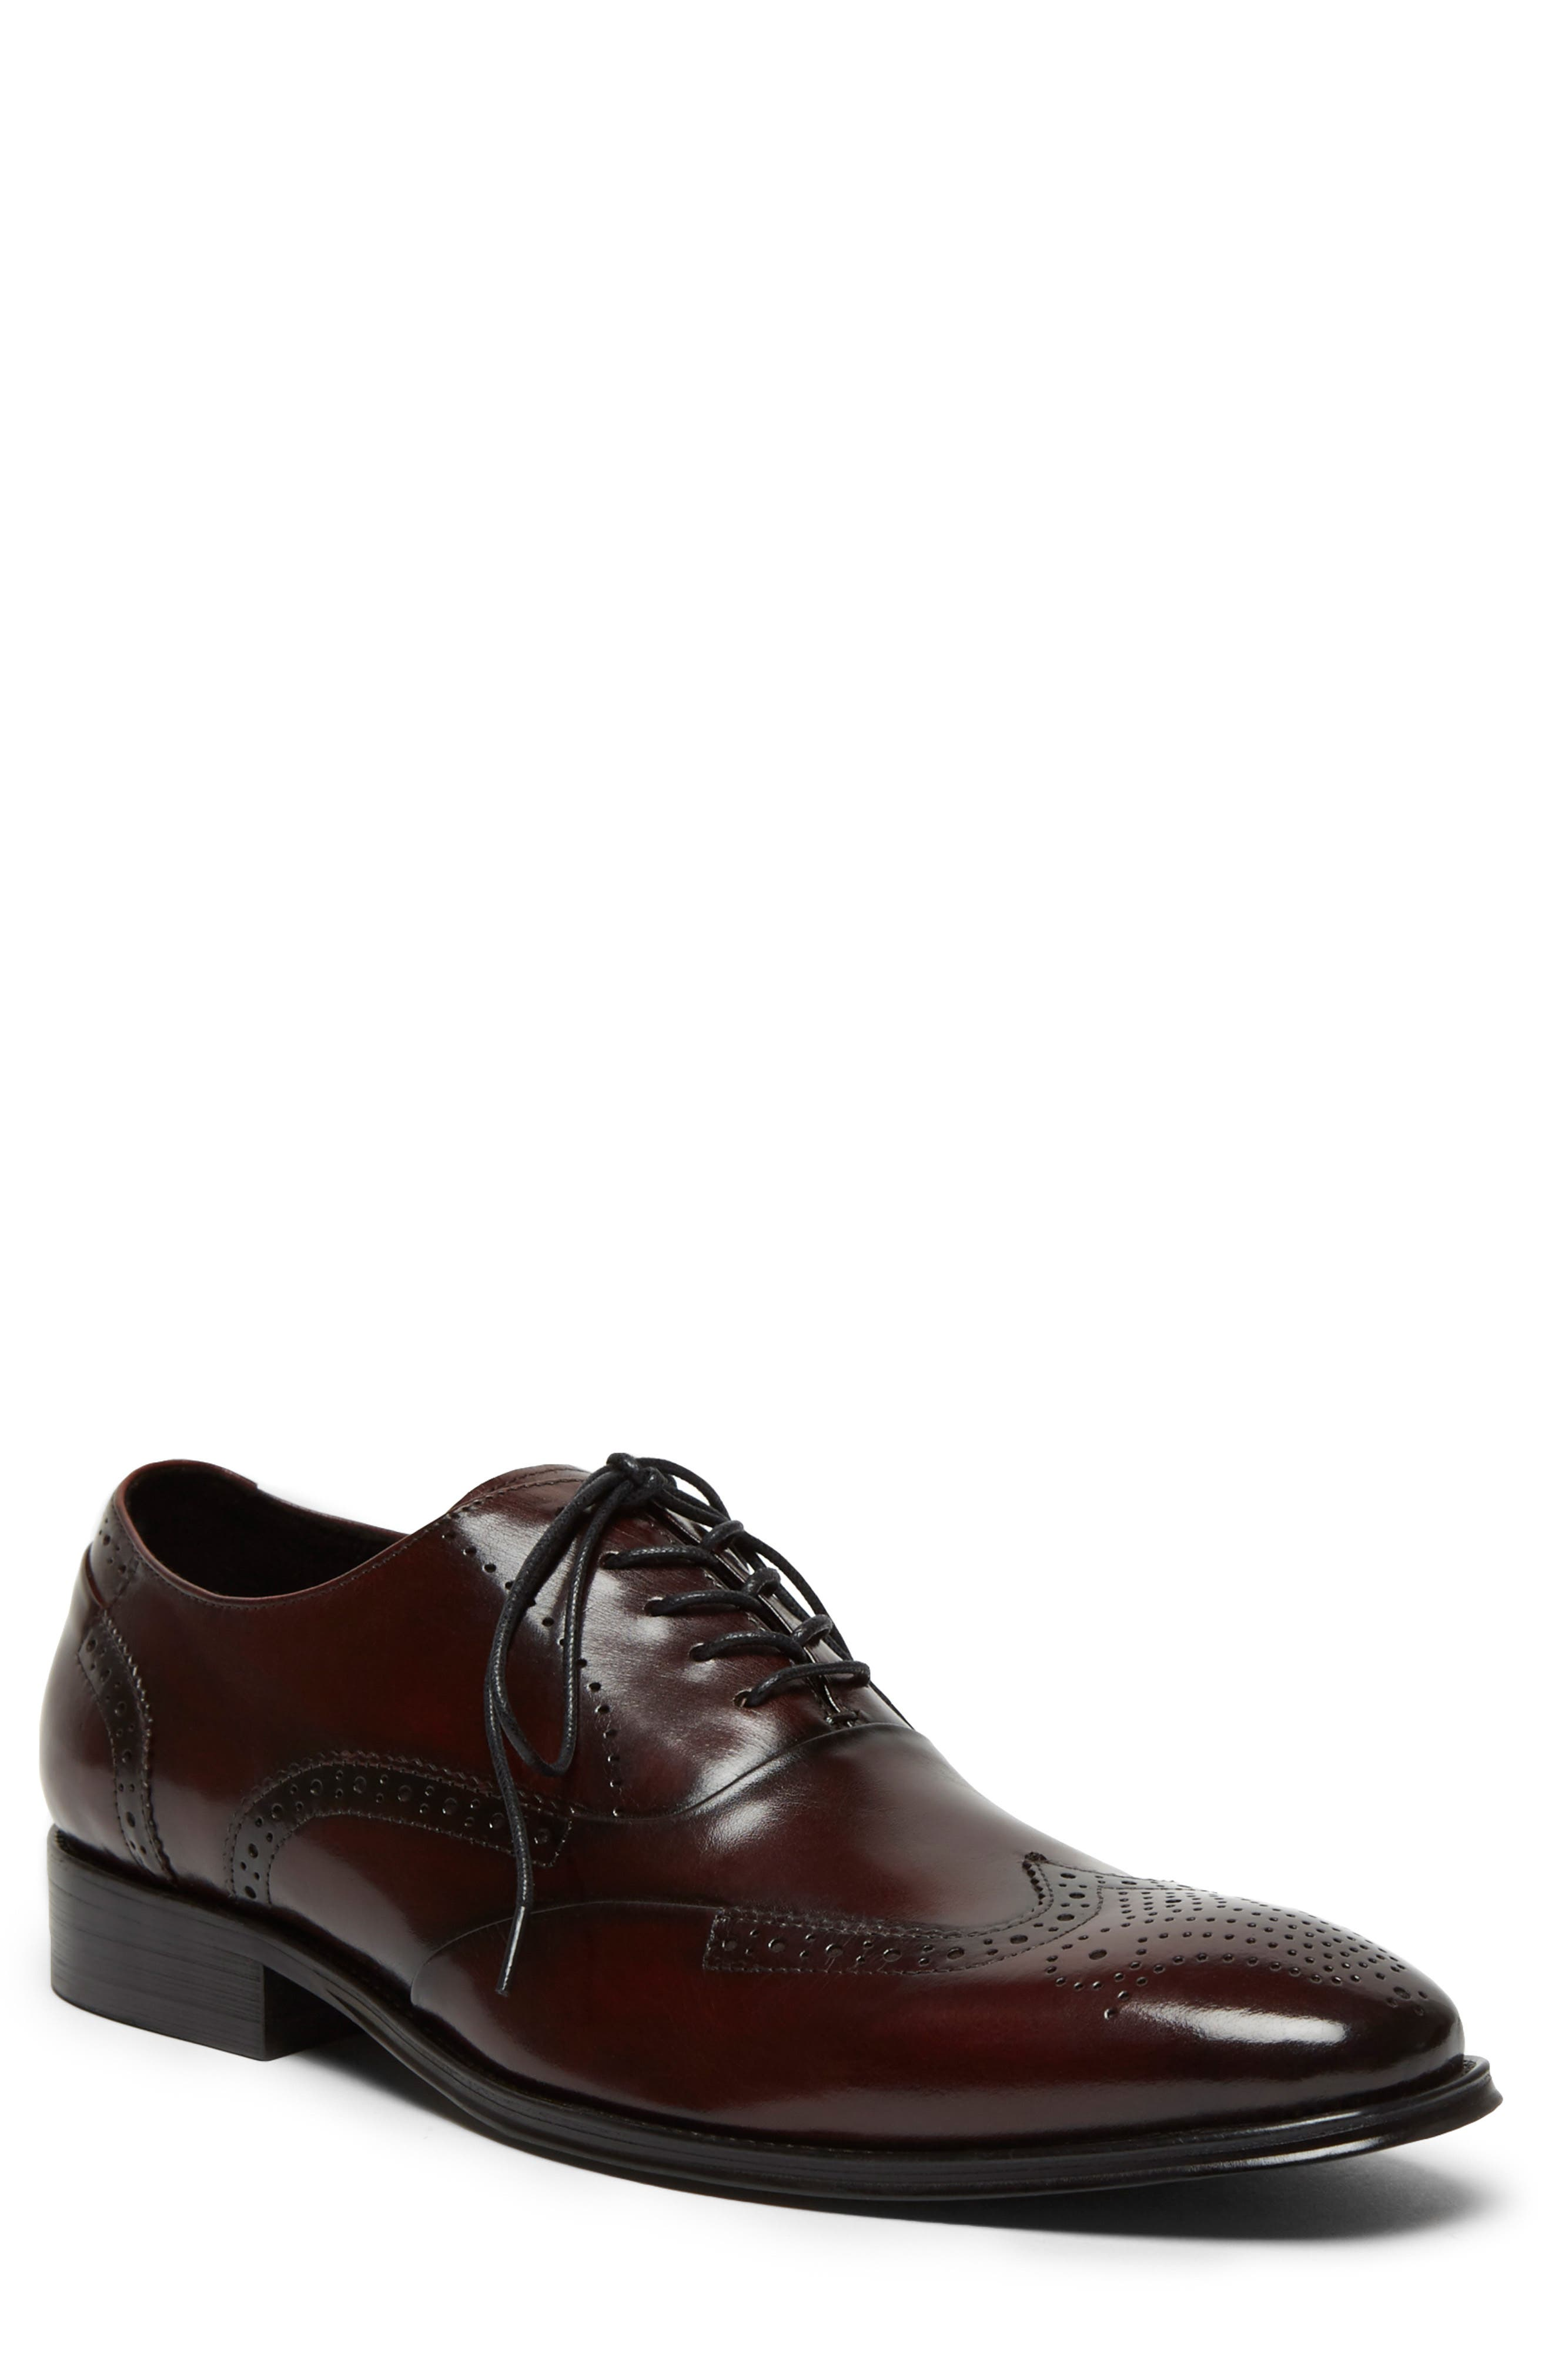 KENNETH COLE NEW YORK, Brant Wingtip, Alternate thumbnail 4, color, BORDEAUX LEATHER